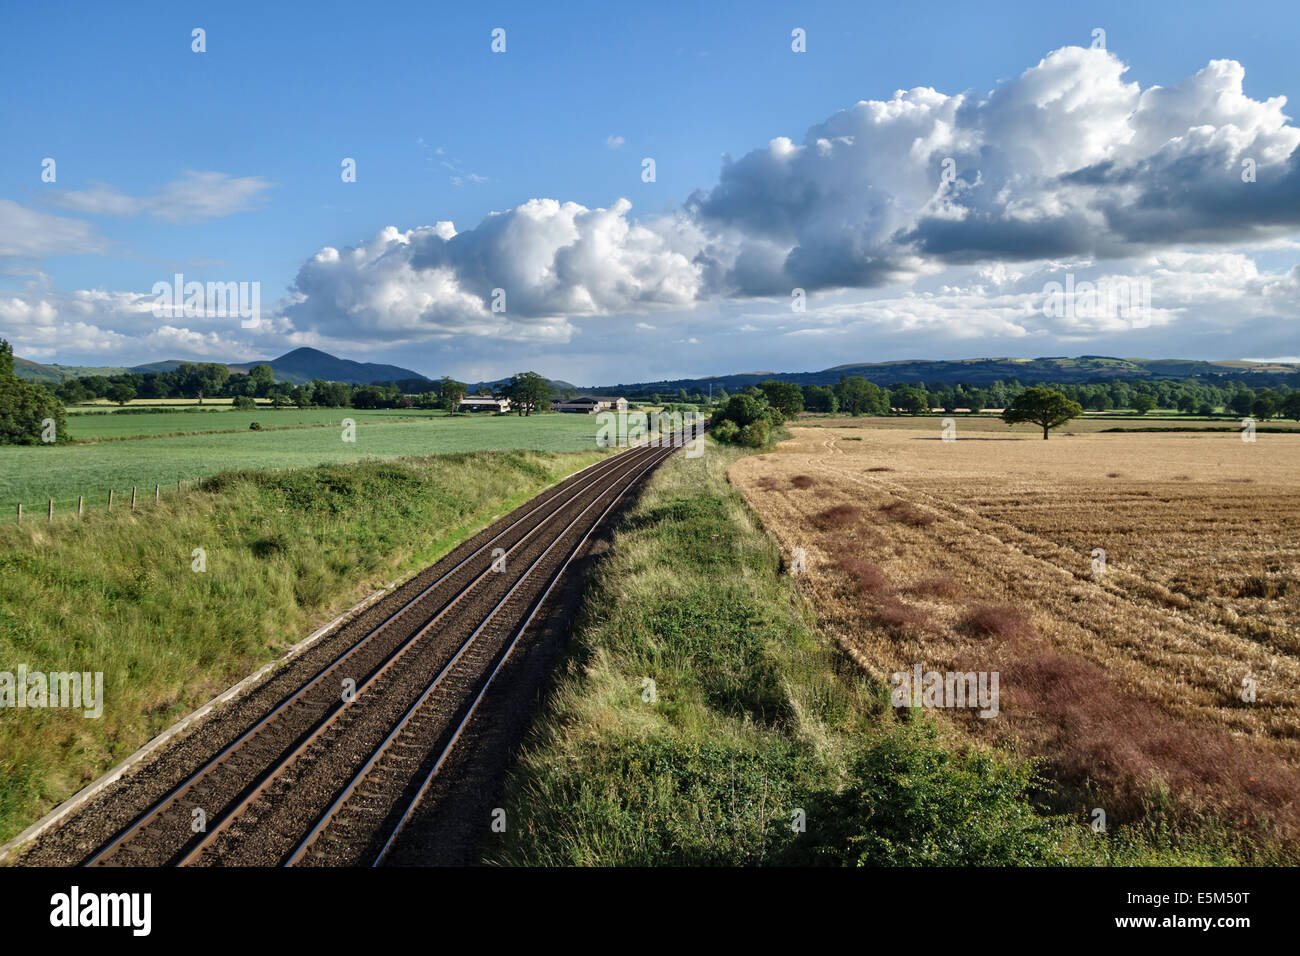 The Welsh Marches railway line looking south towards Caer Caradoc and the Long Mynd in Shropshire, UK - Stock Image